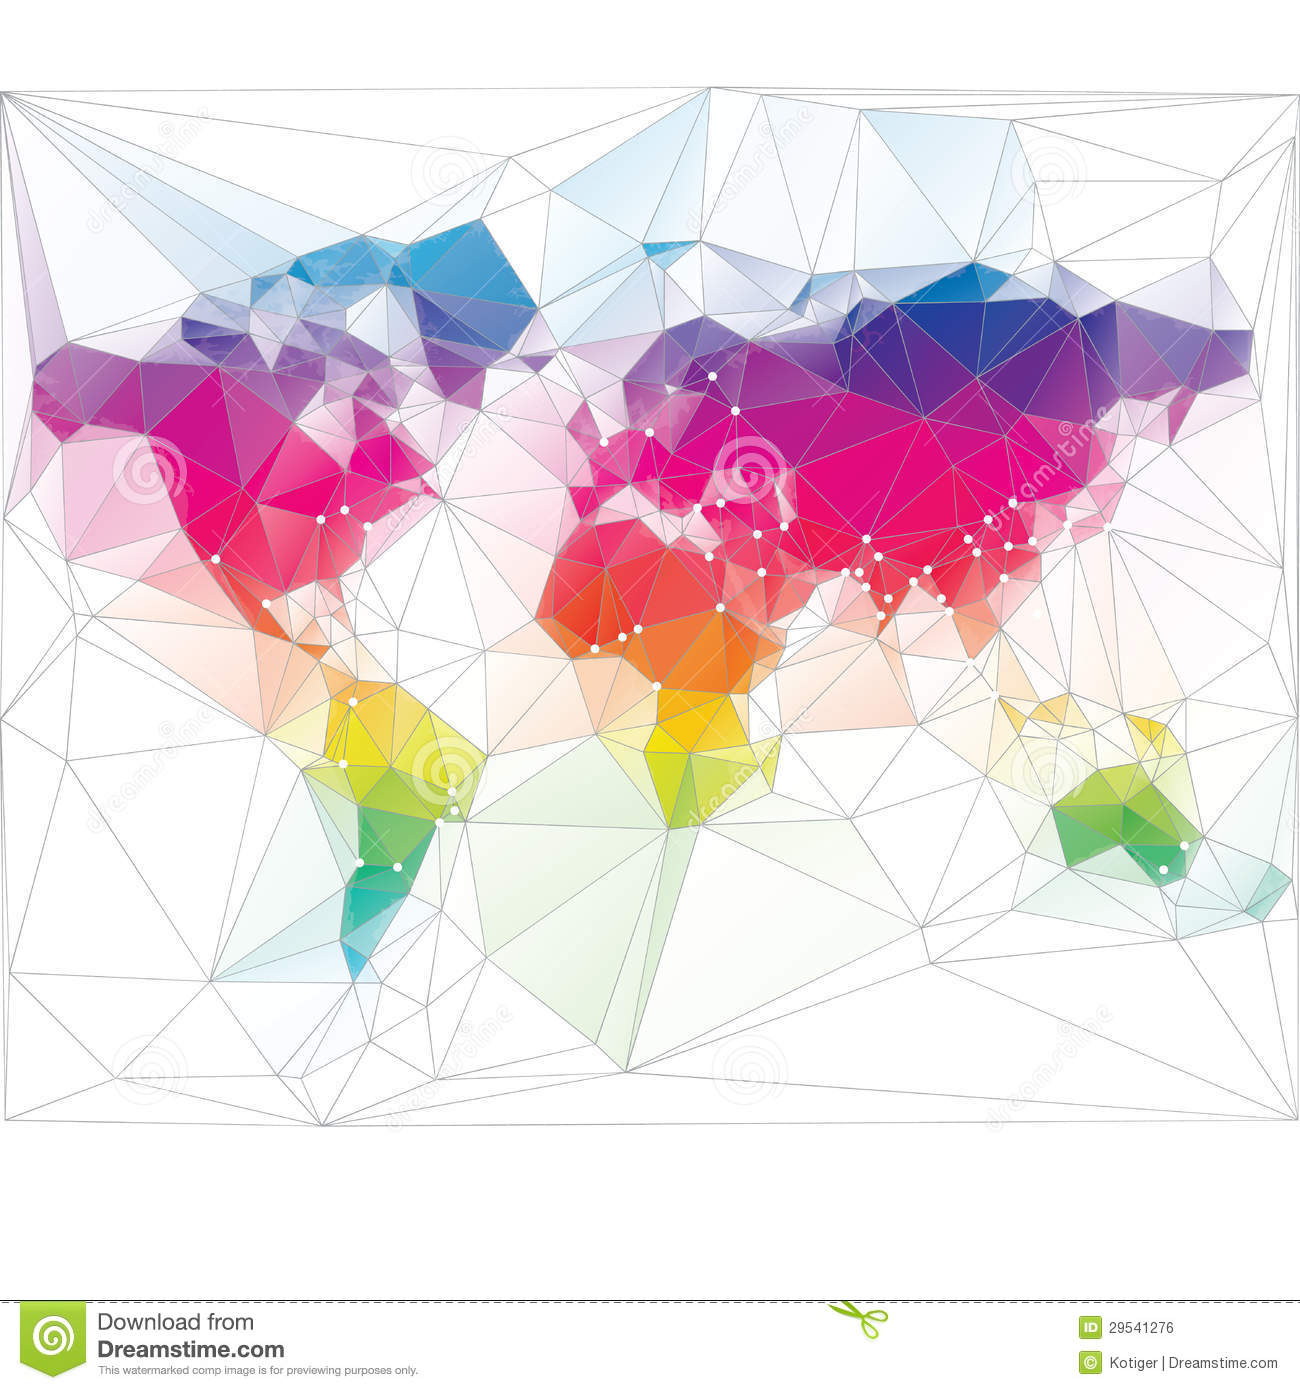 World map design idealstalist world map design gumiabroncs Choice Image